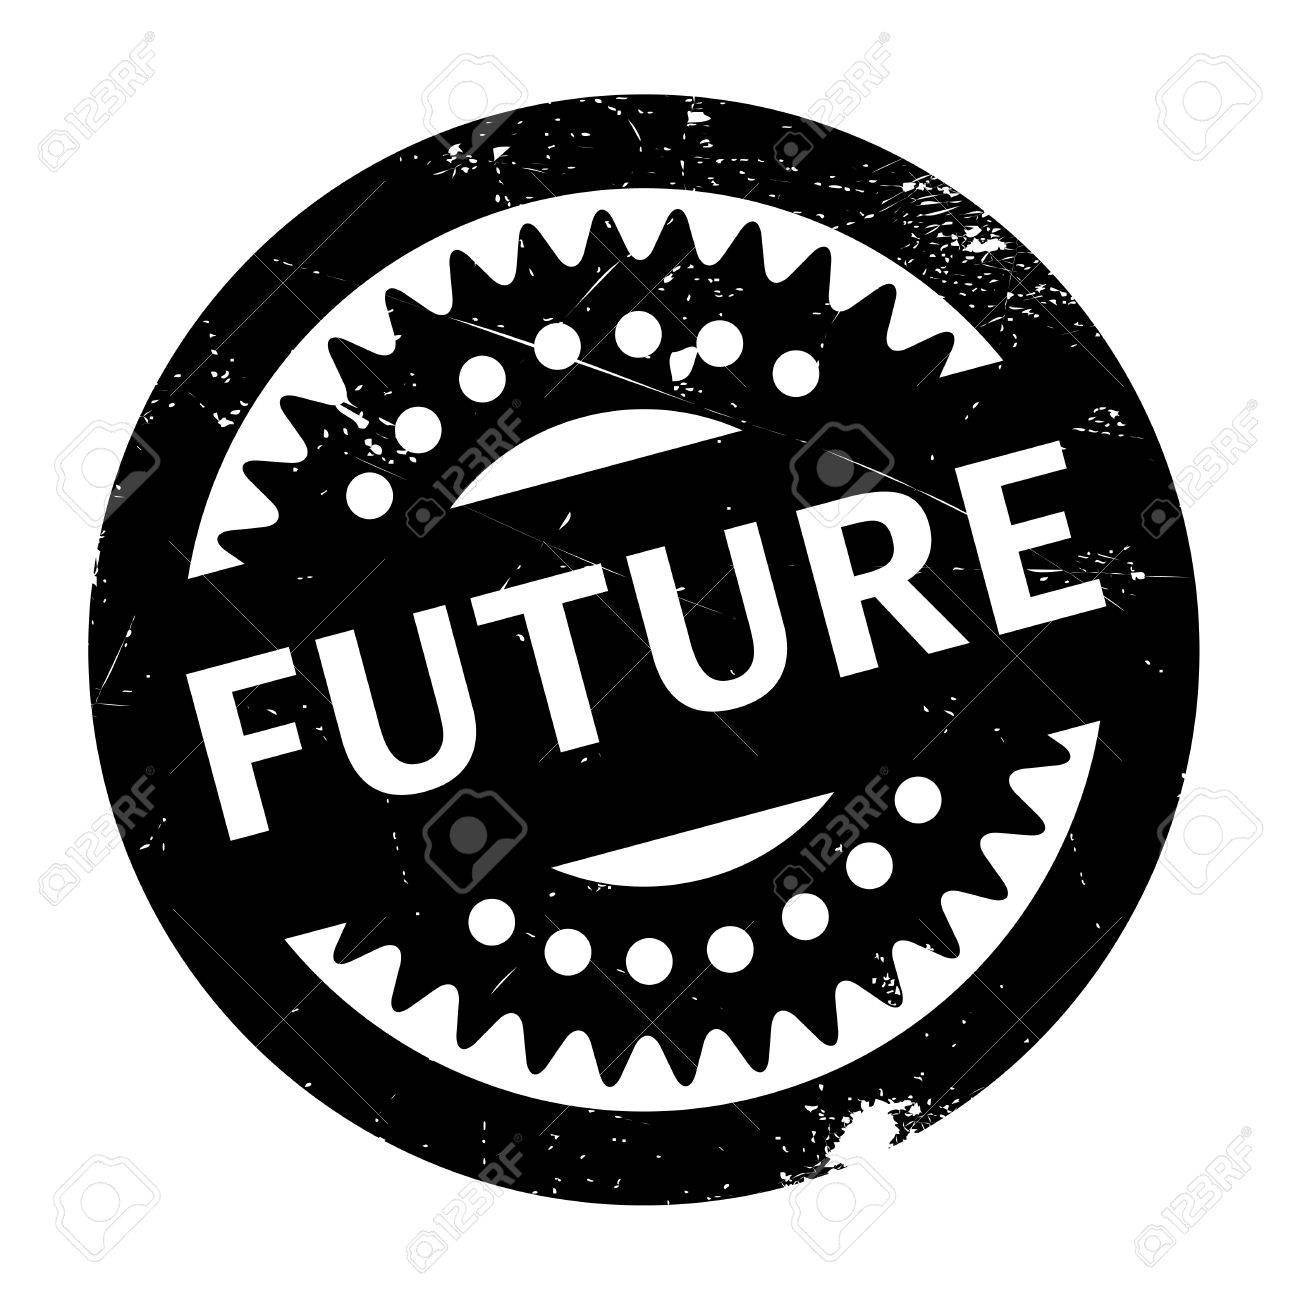 future rubber stamp grunge design with dust scratches effects rh 123rf com And White Black Art Rope Clip EP Clip Art Black and White